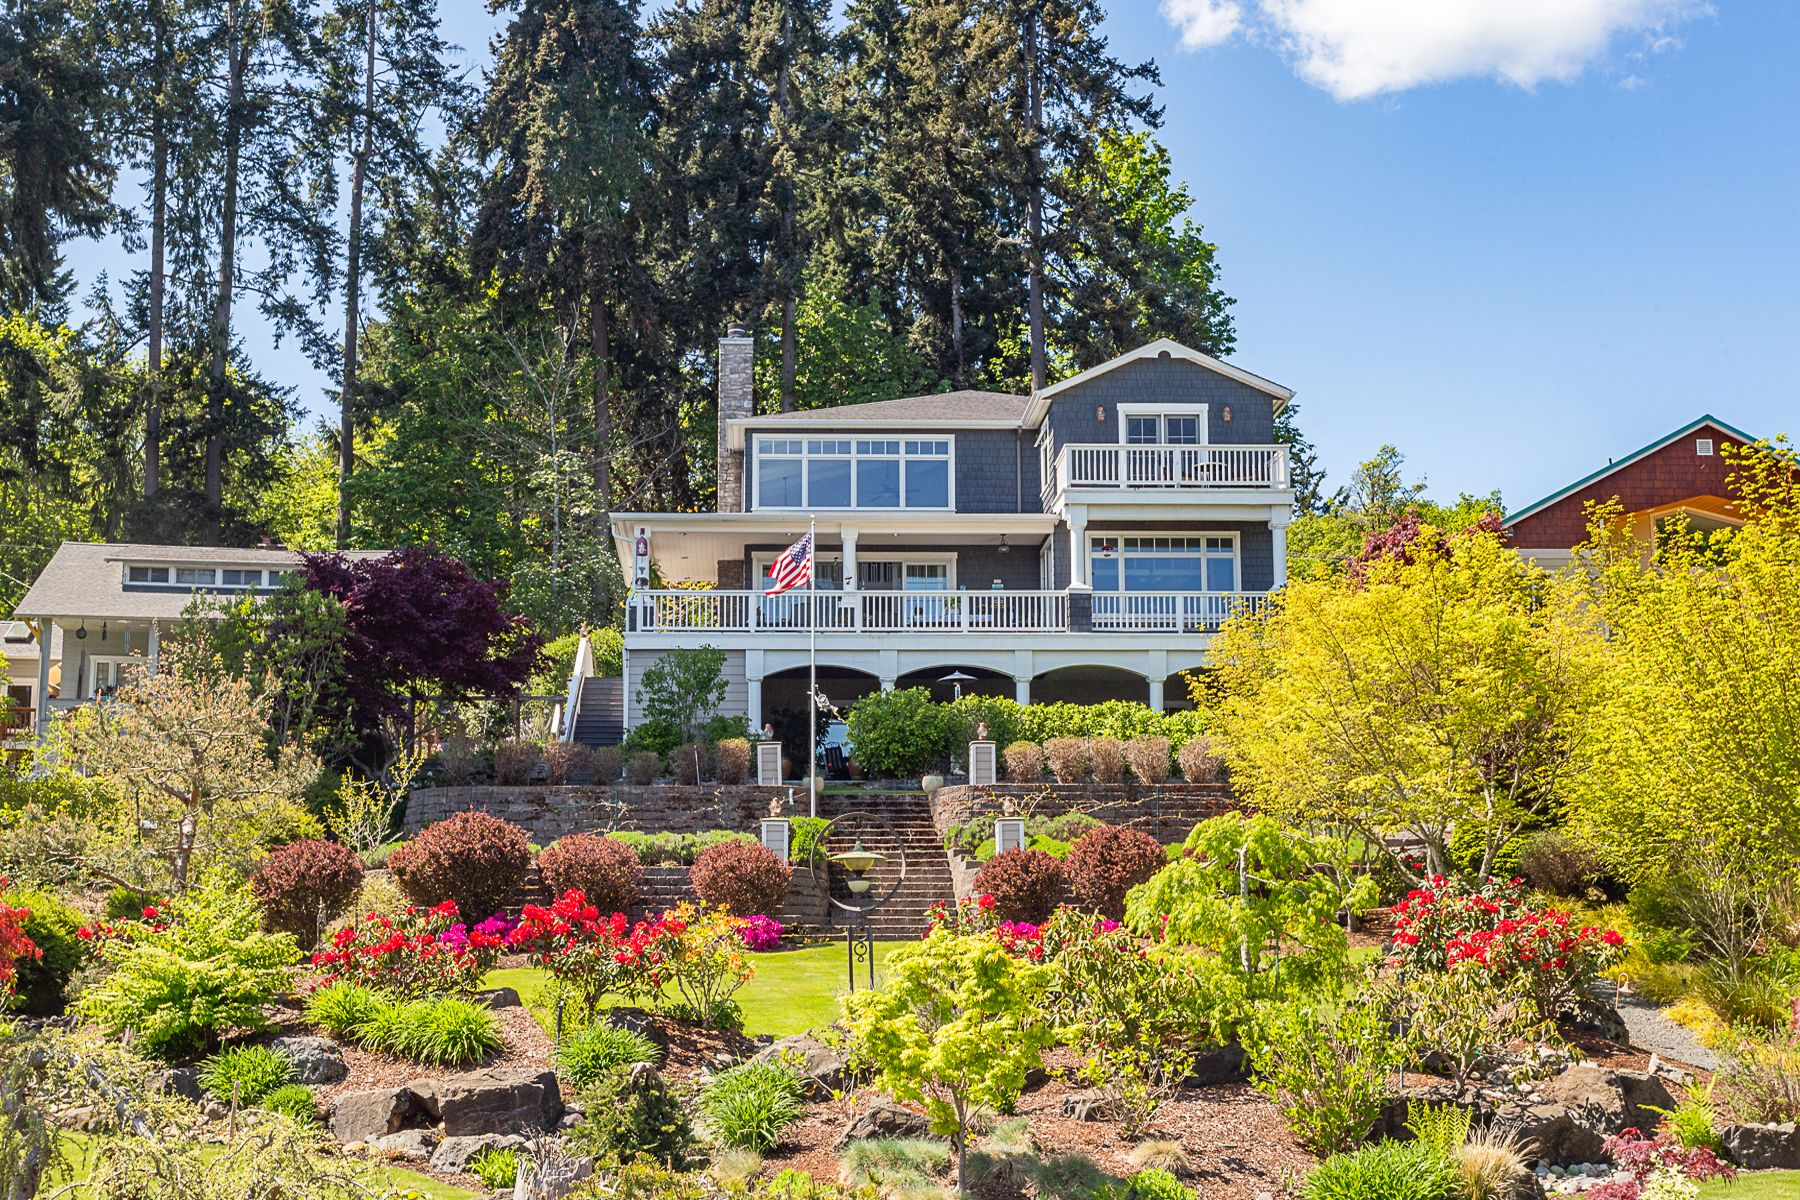 Single Family Homes for Sale at 4972 Illahee Road NE, Illahee, WA 98311 4972 Illahee Road NE Bremerton, Washington 98311 United States